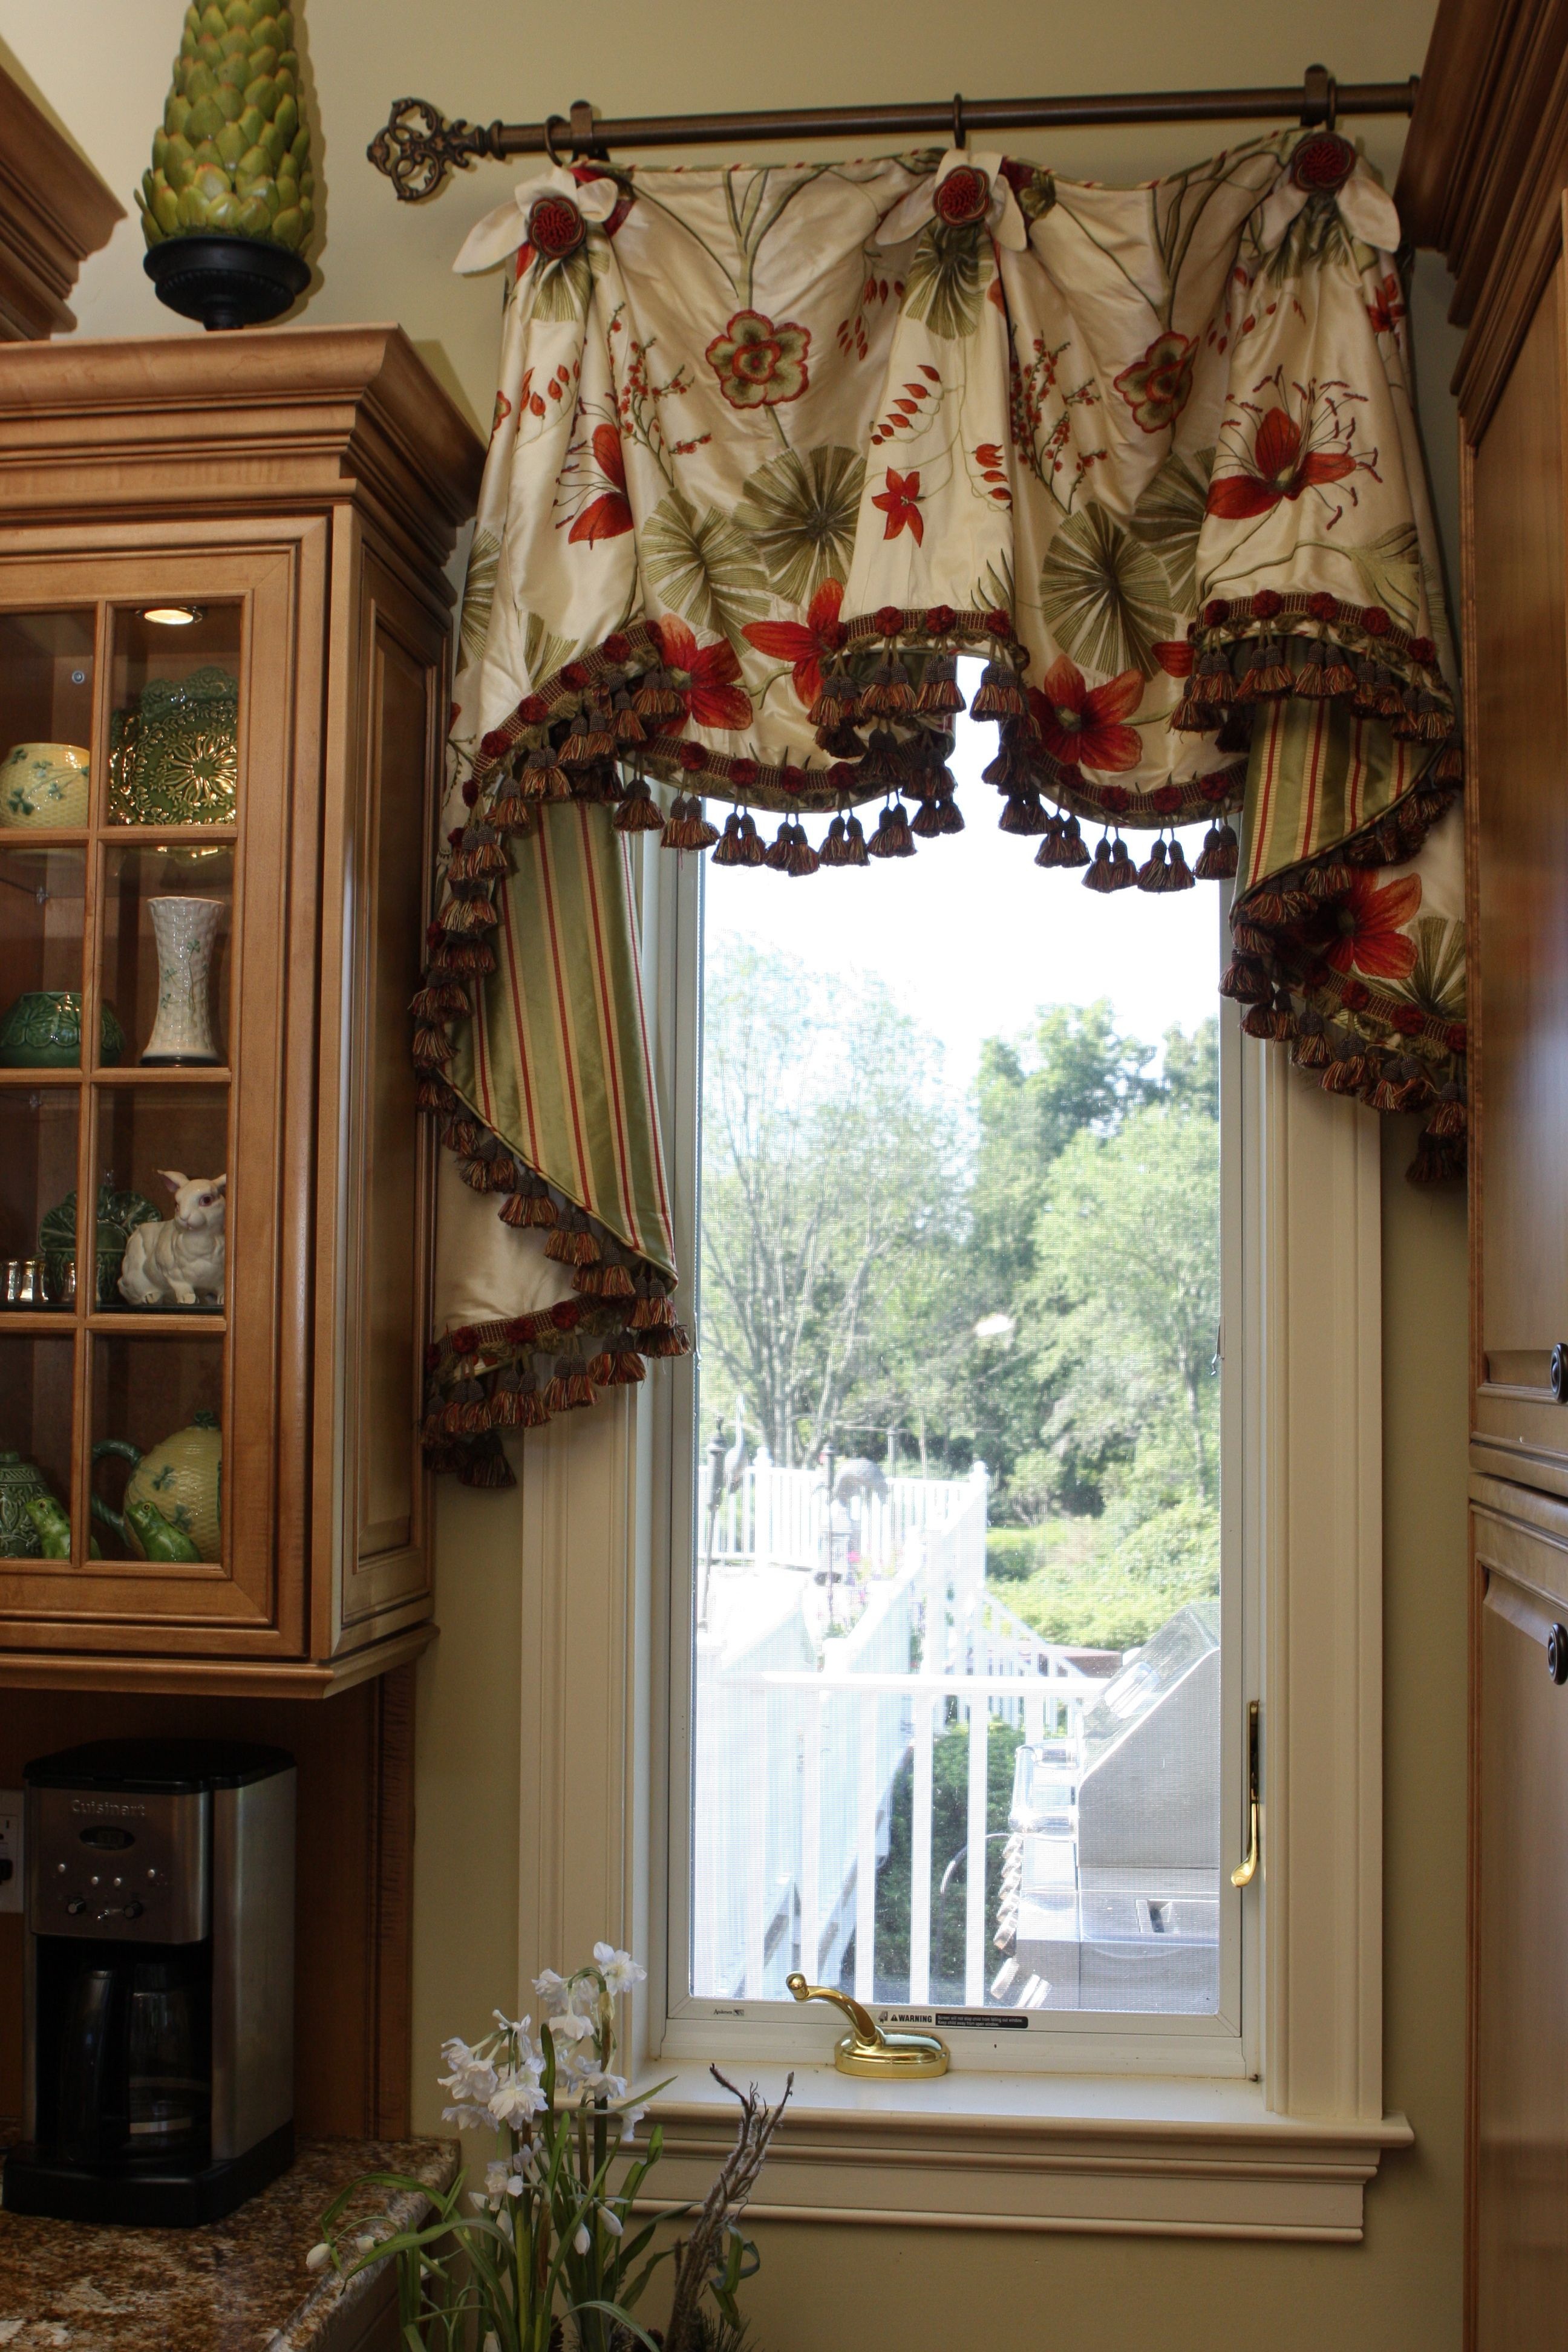 This scalloped valance with bells jabots enhances the for Kitchen cornice ideas